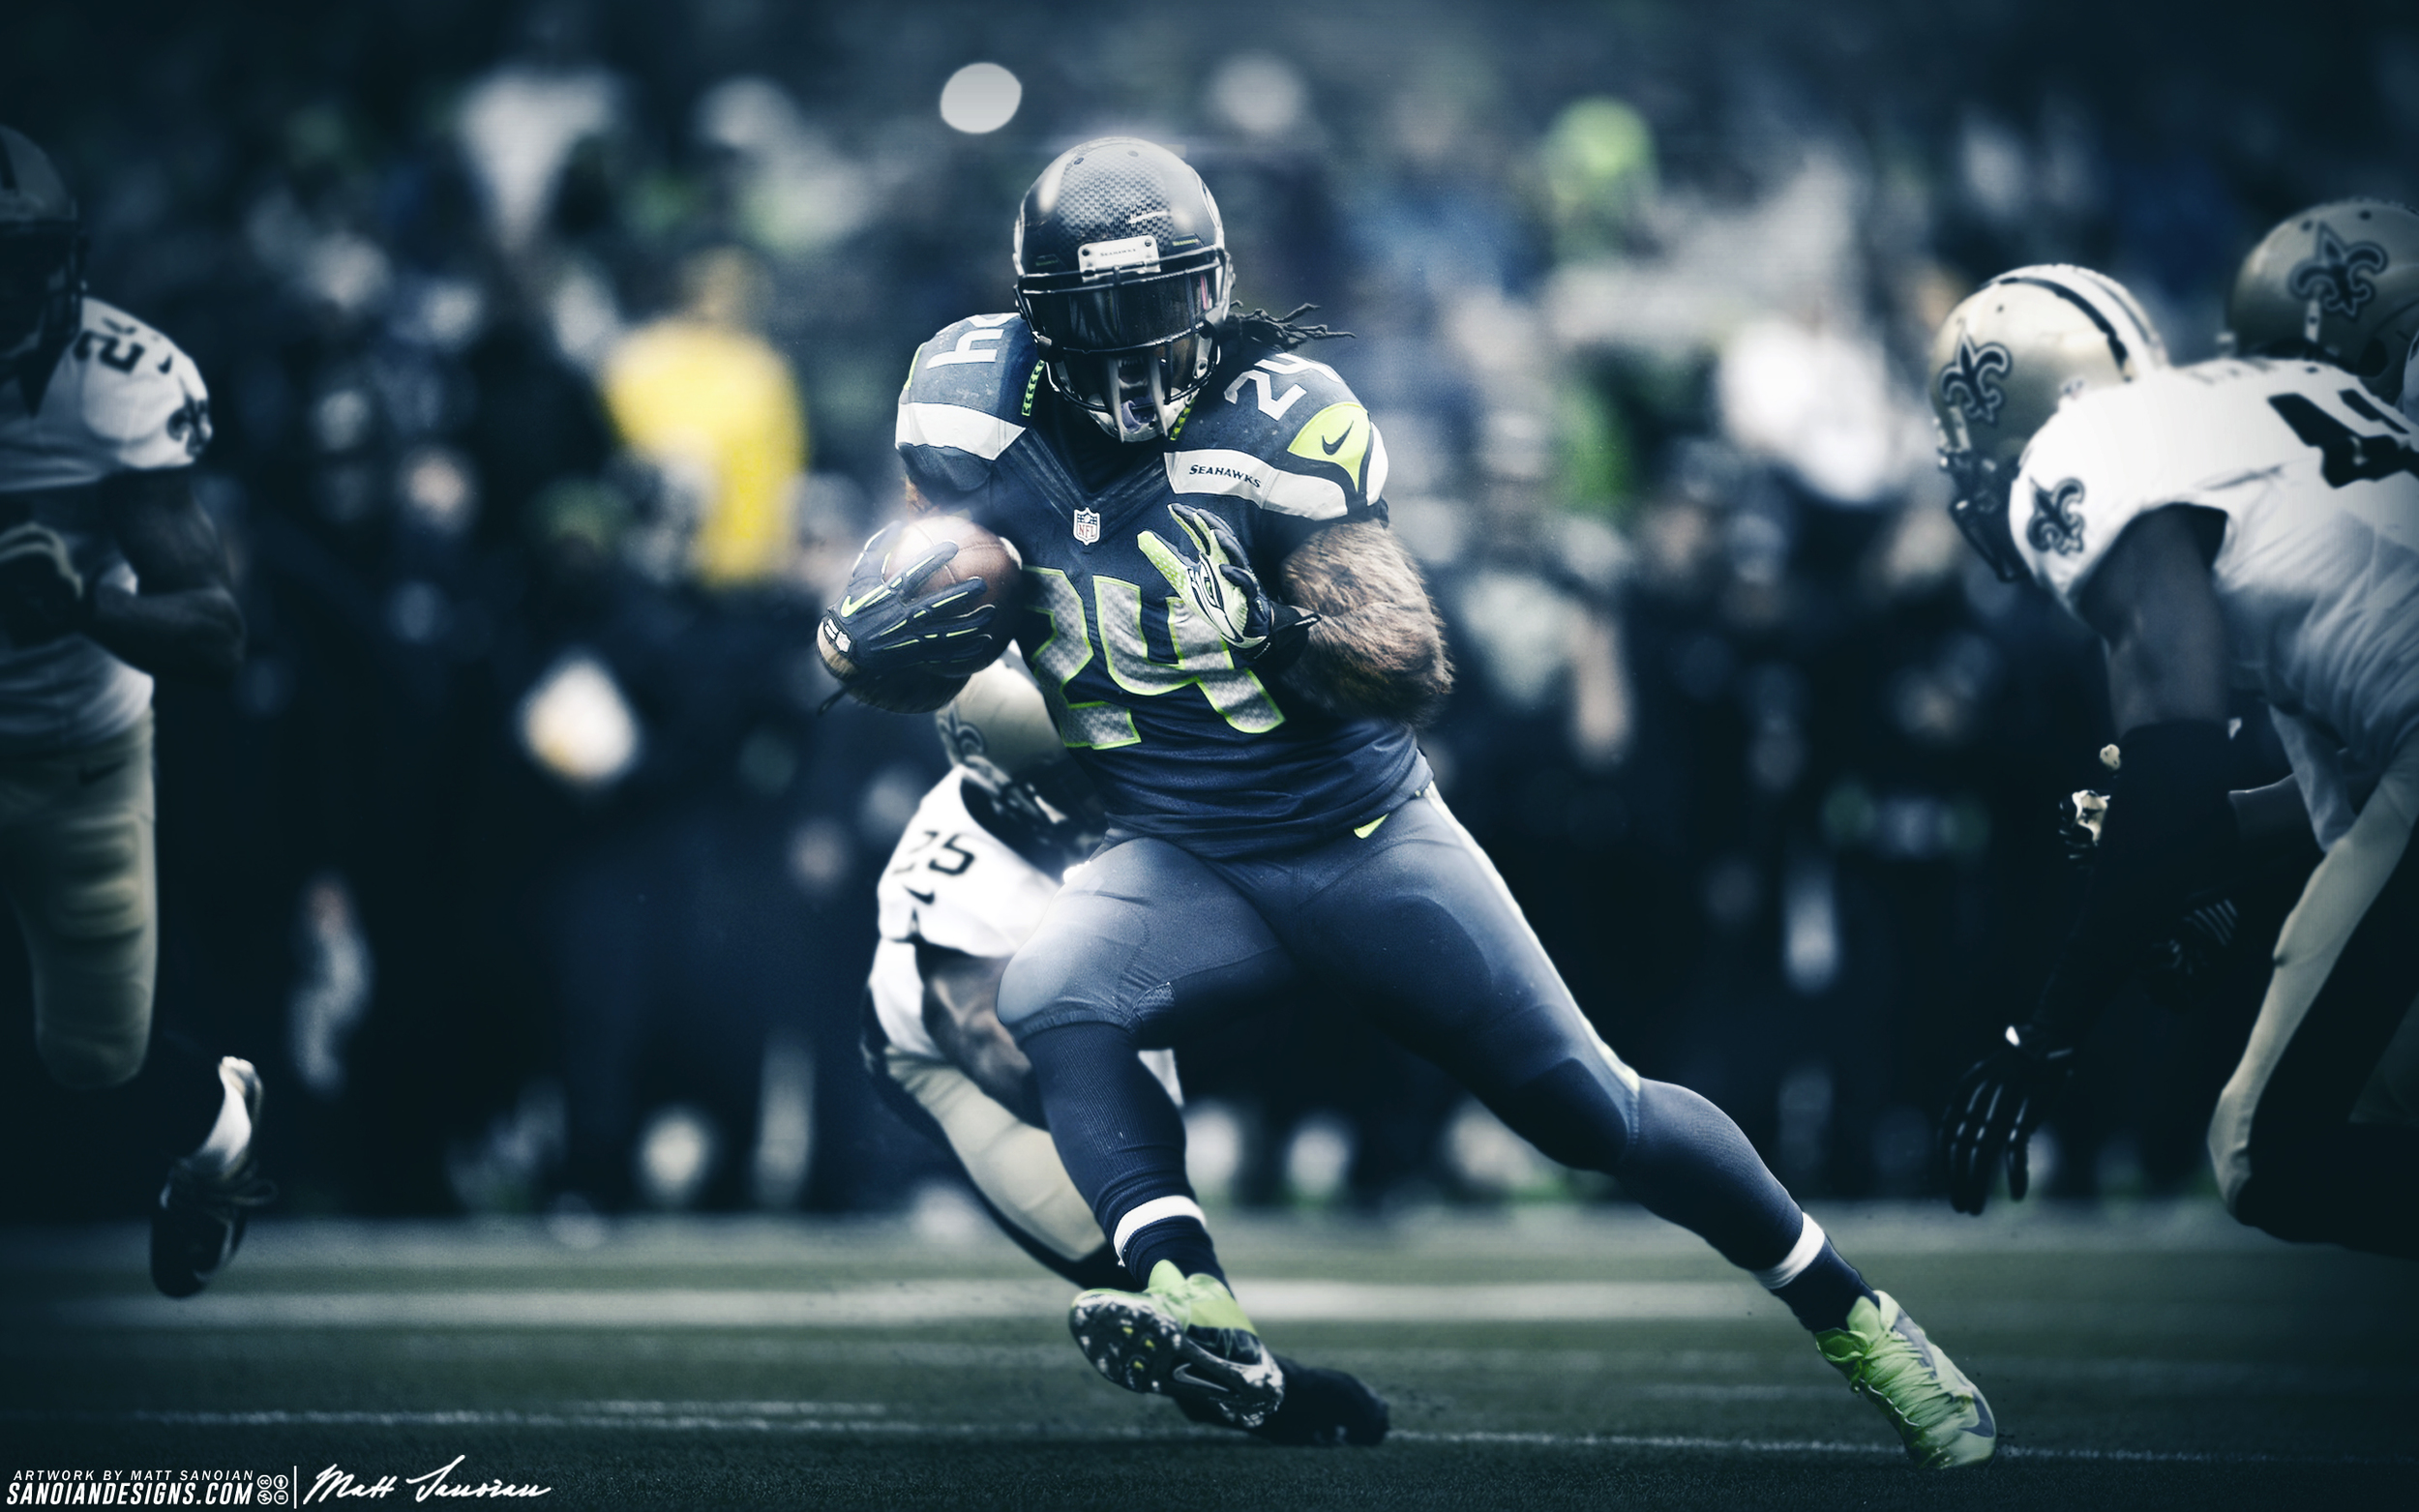 Marshawn Lynch - Beast Mode